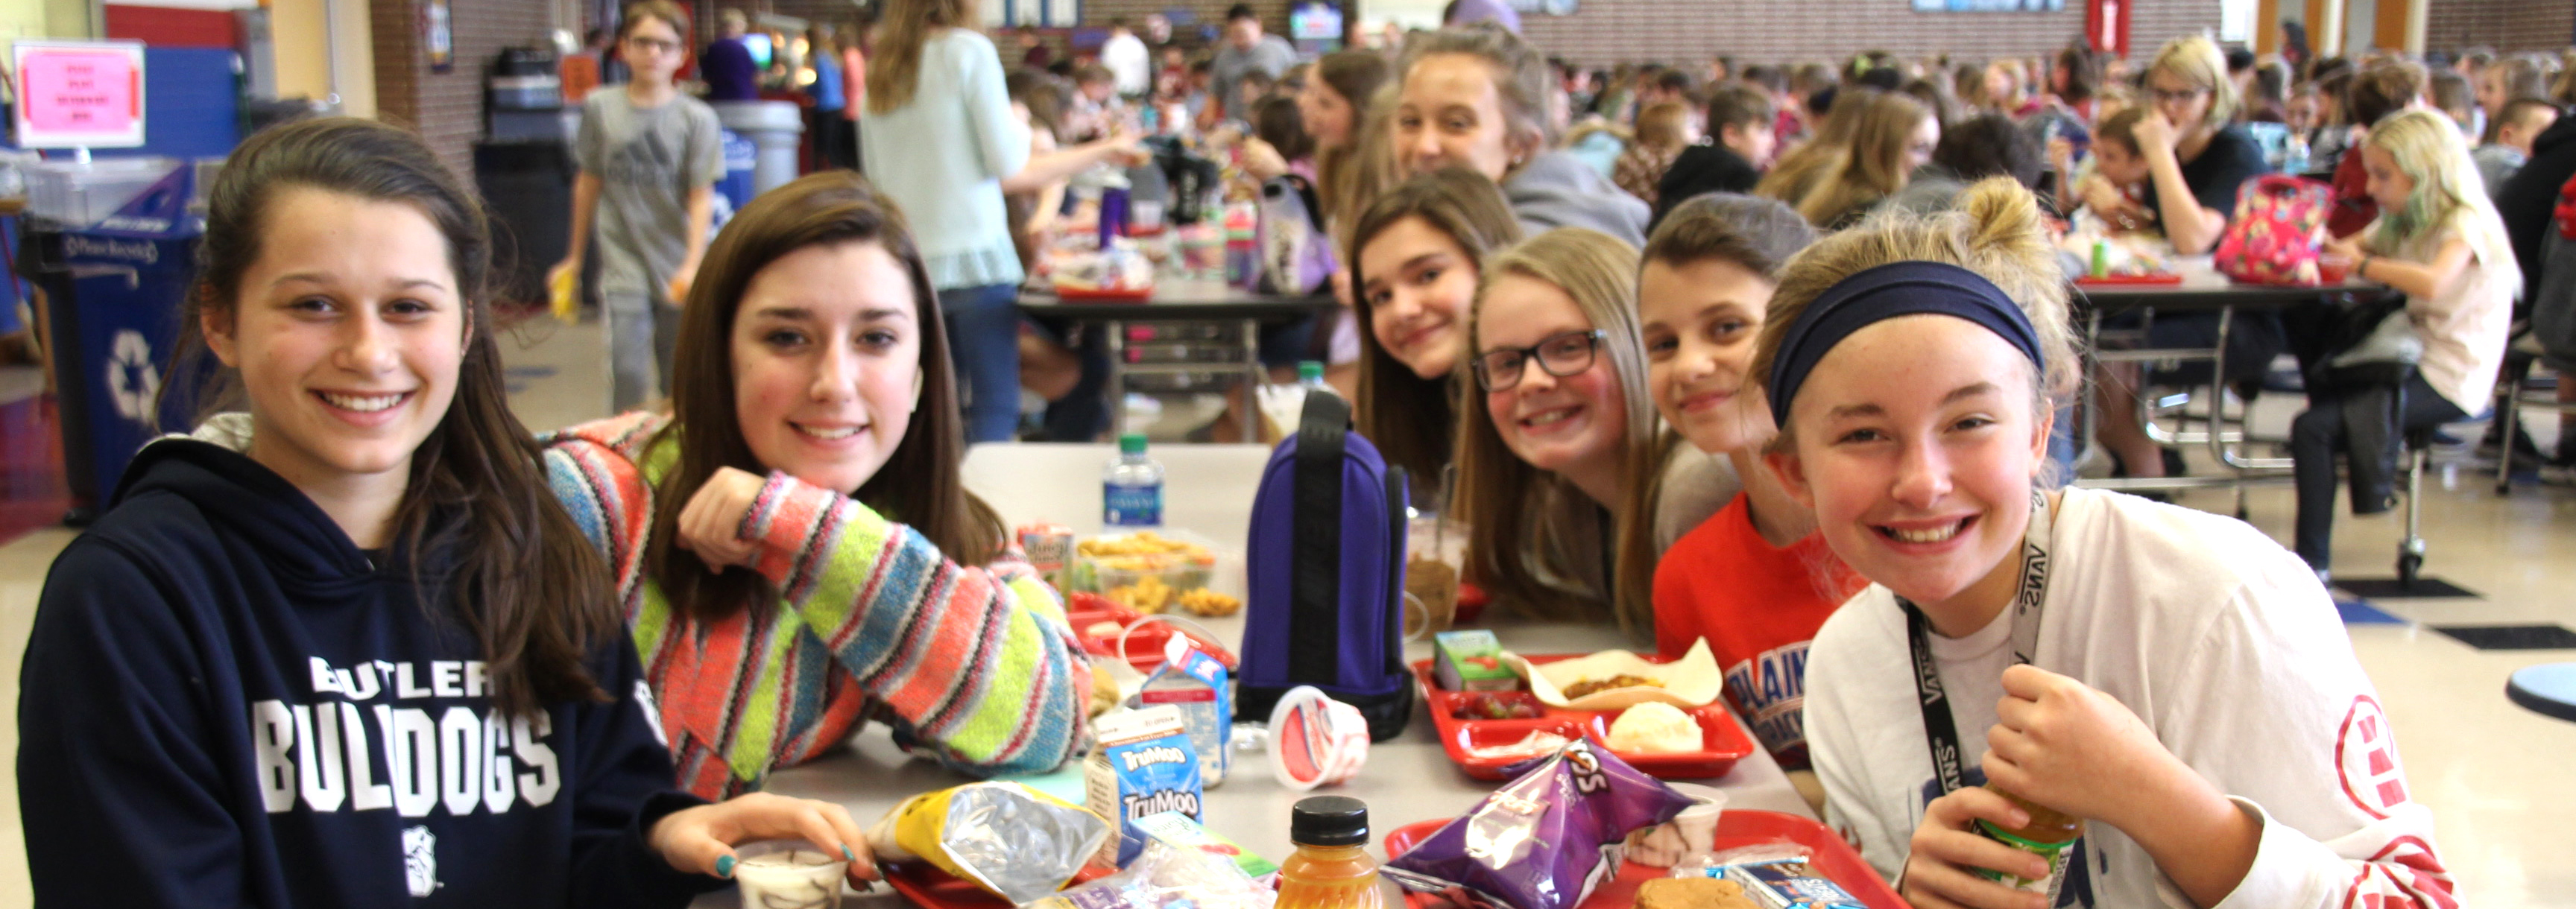 PCMS students all smiles during their lunch break